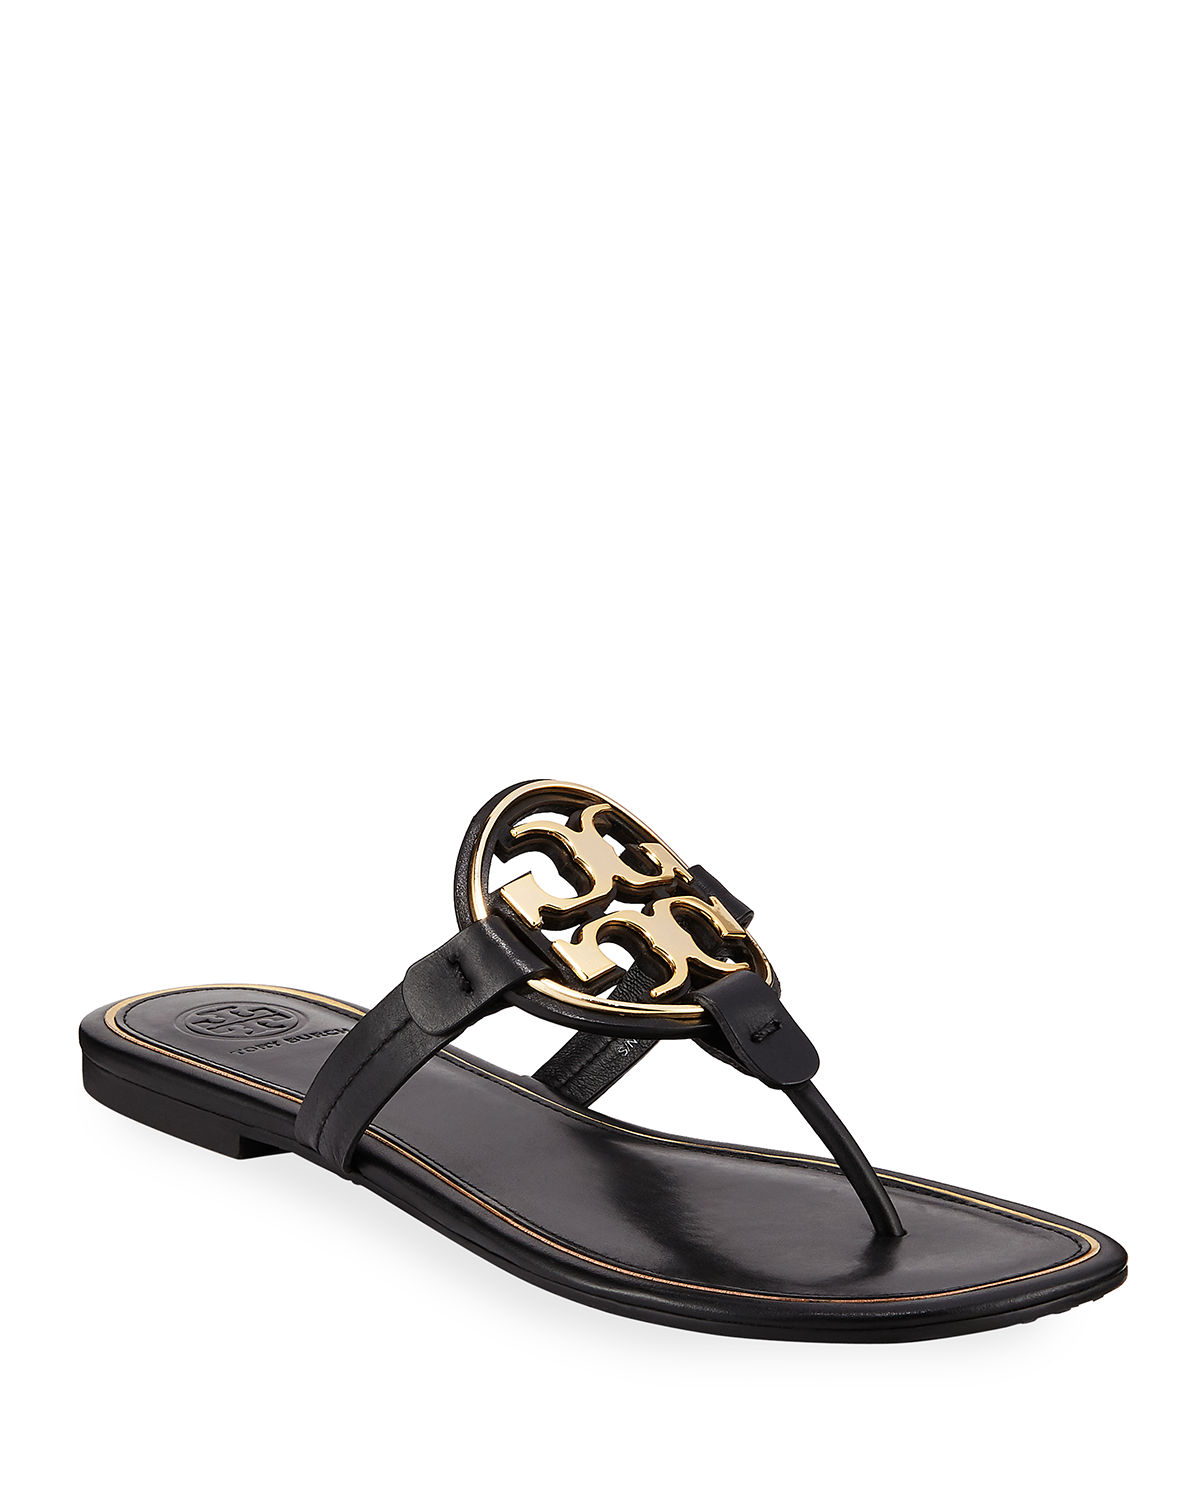 801f64d50e1474 Tory Burch Miller Flat Metal Logo Slide Sandals